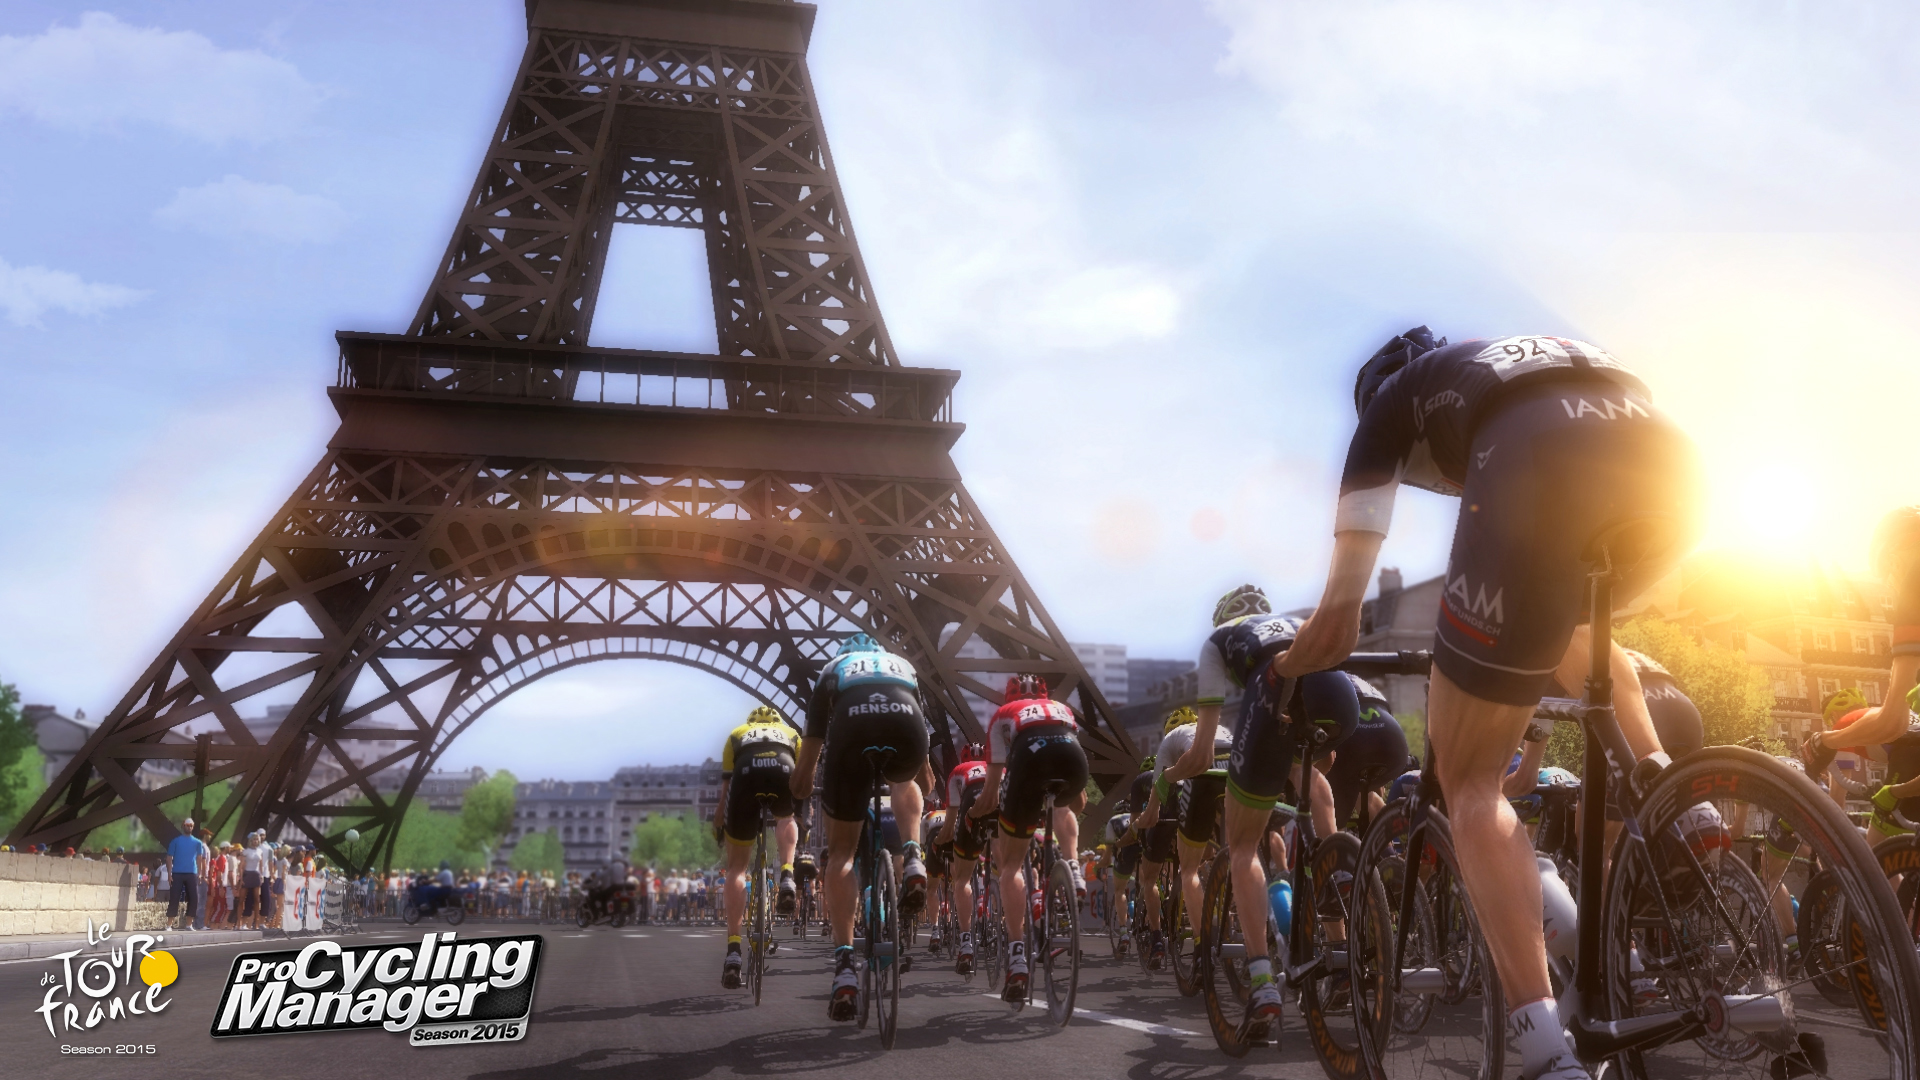 2 For 1 Launch Trailer For Tour de France 2015 and Pro Cycling Manager 2015